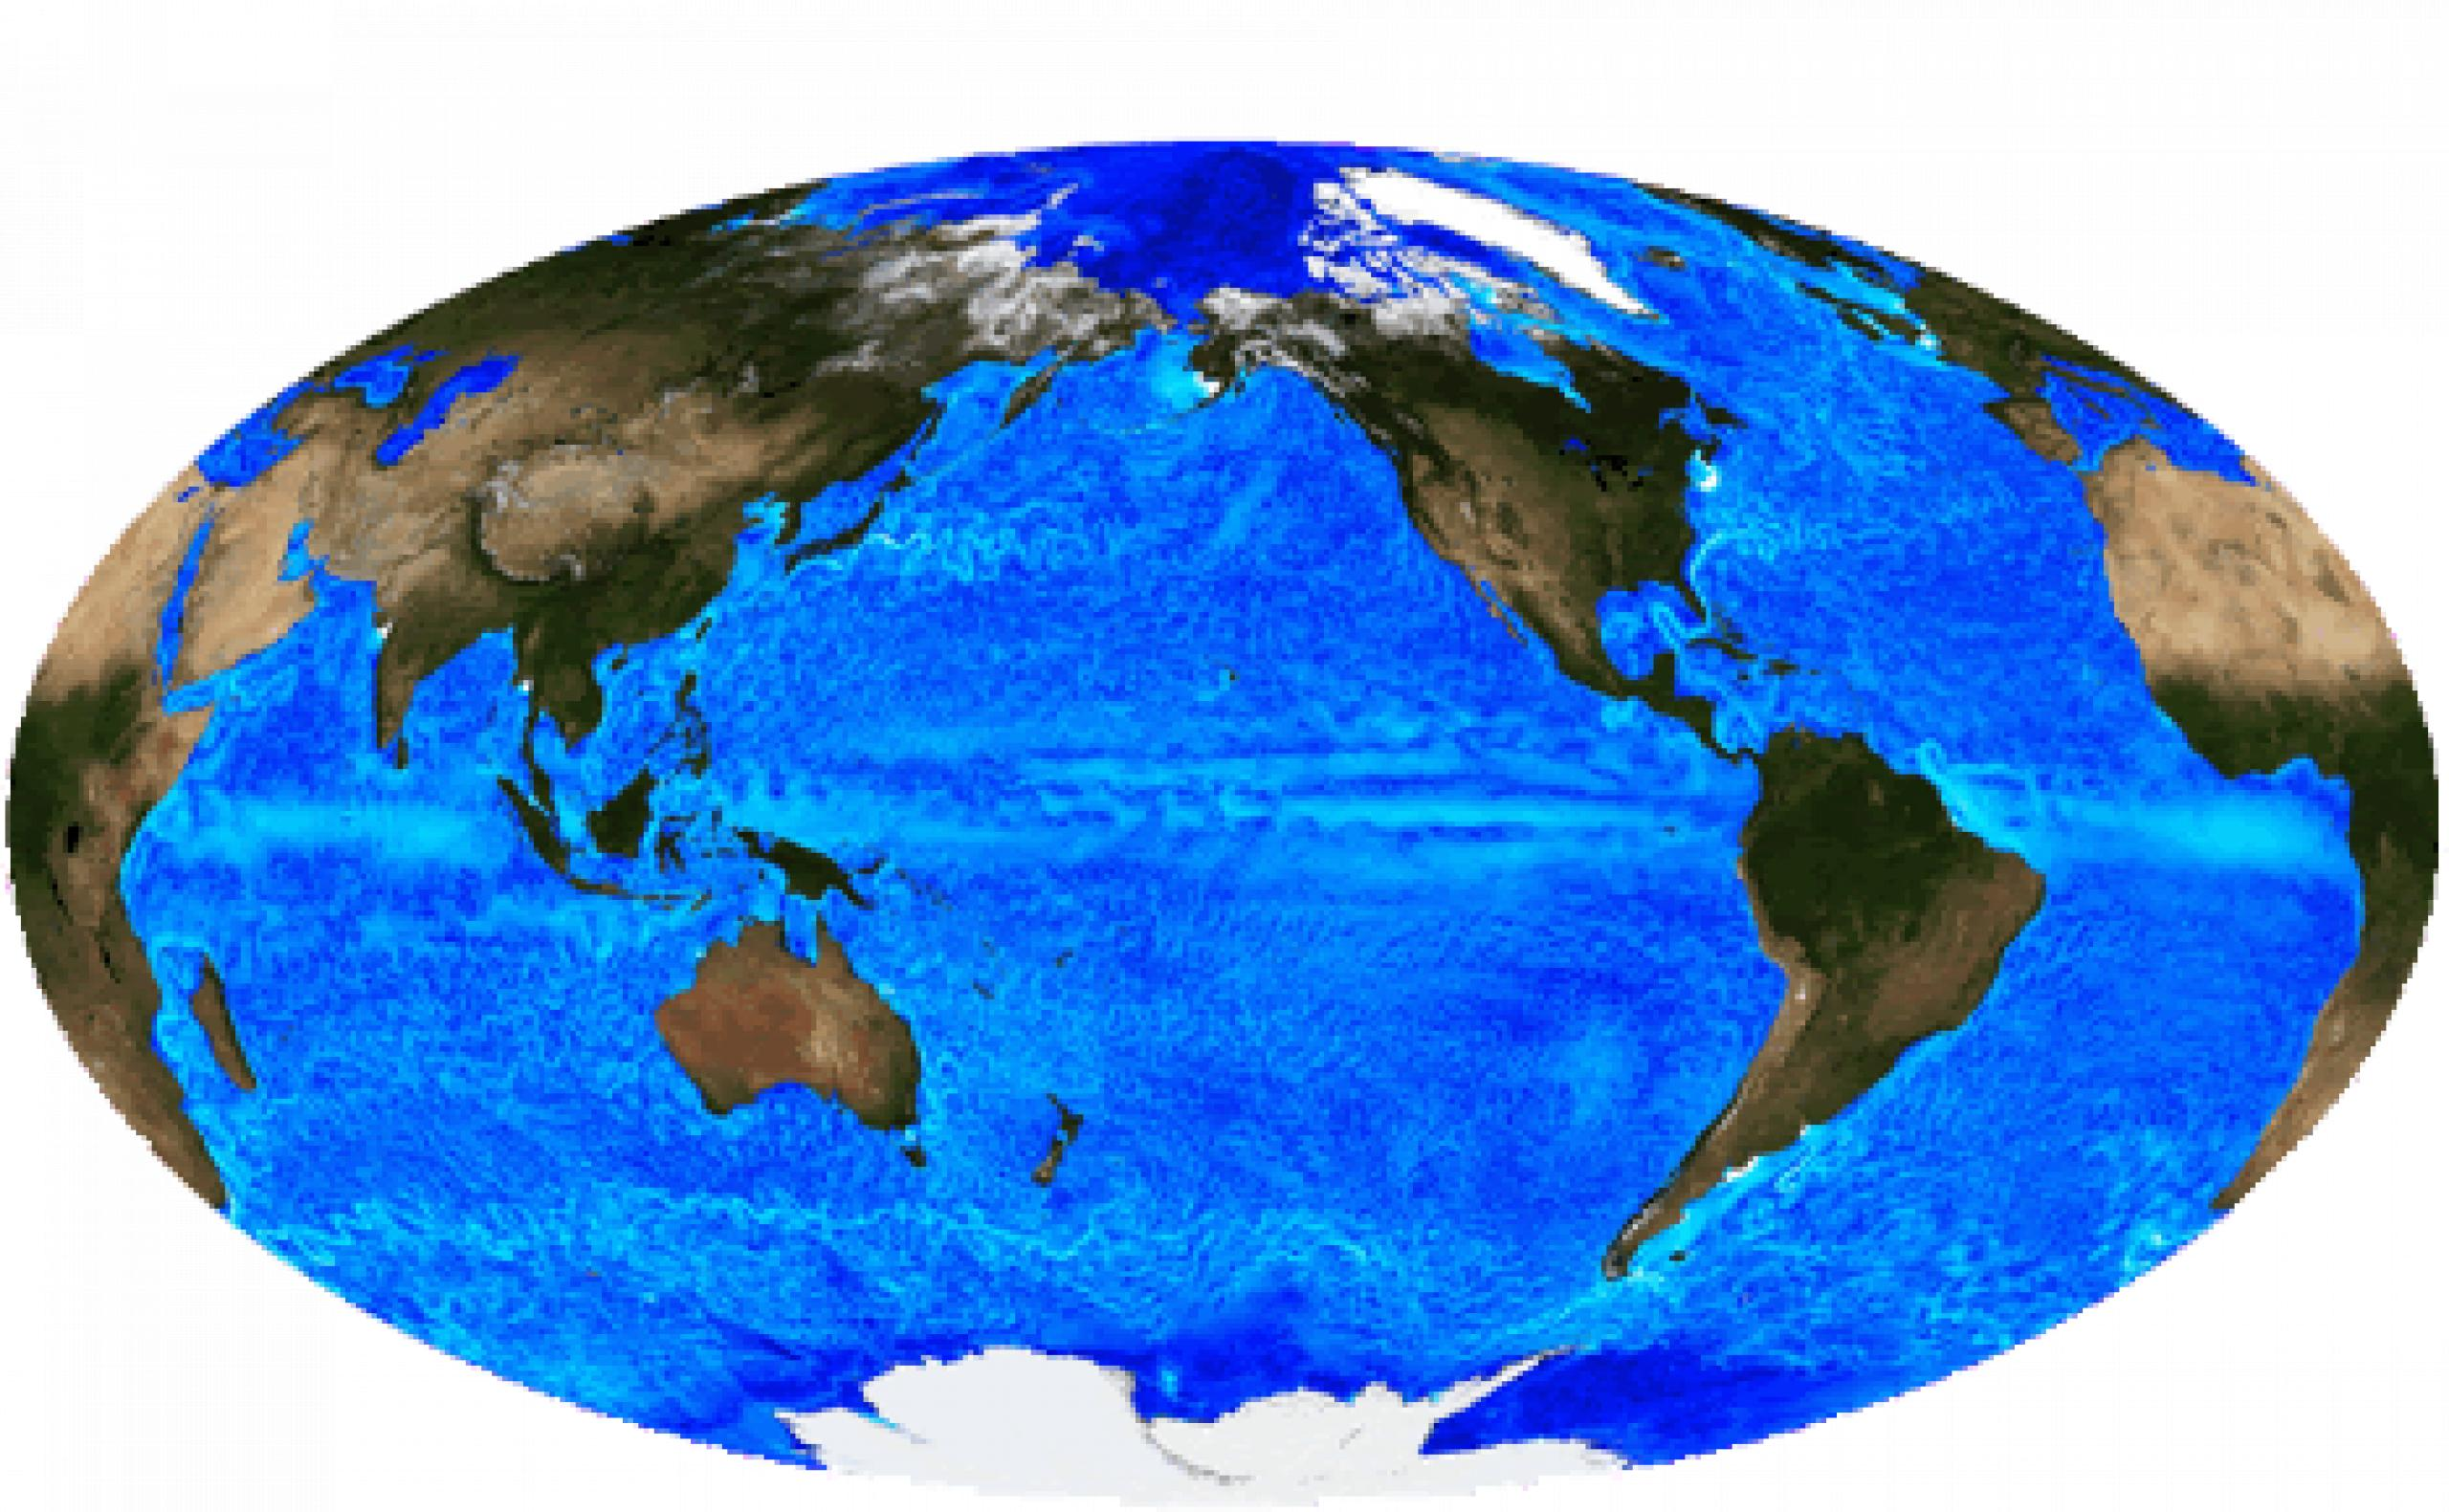 Satellite image of the globe showing ocean currents